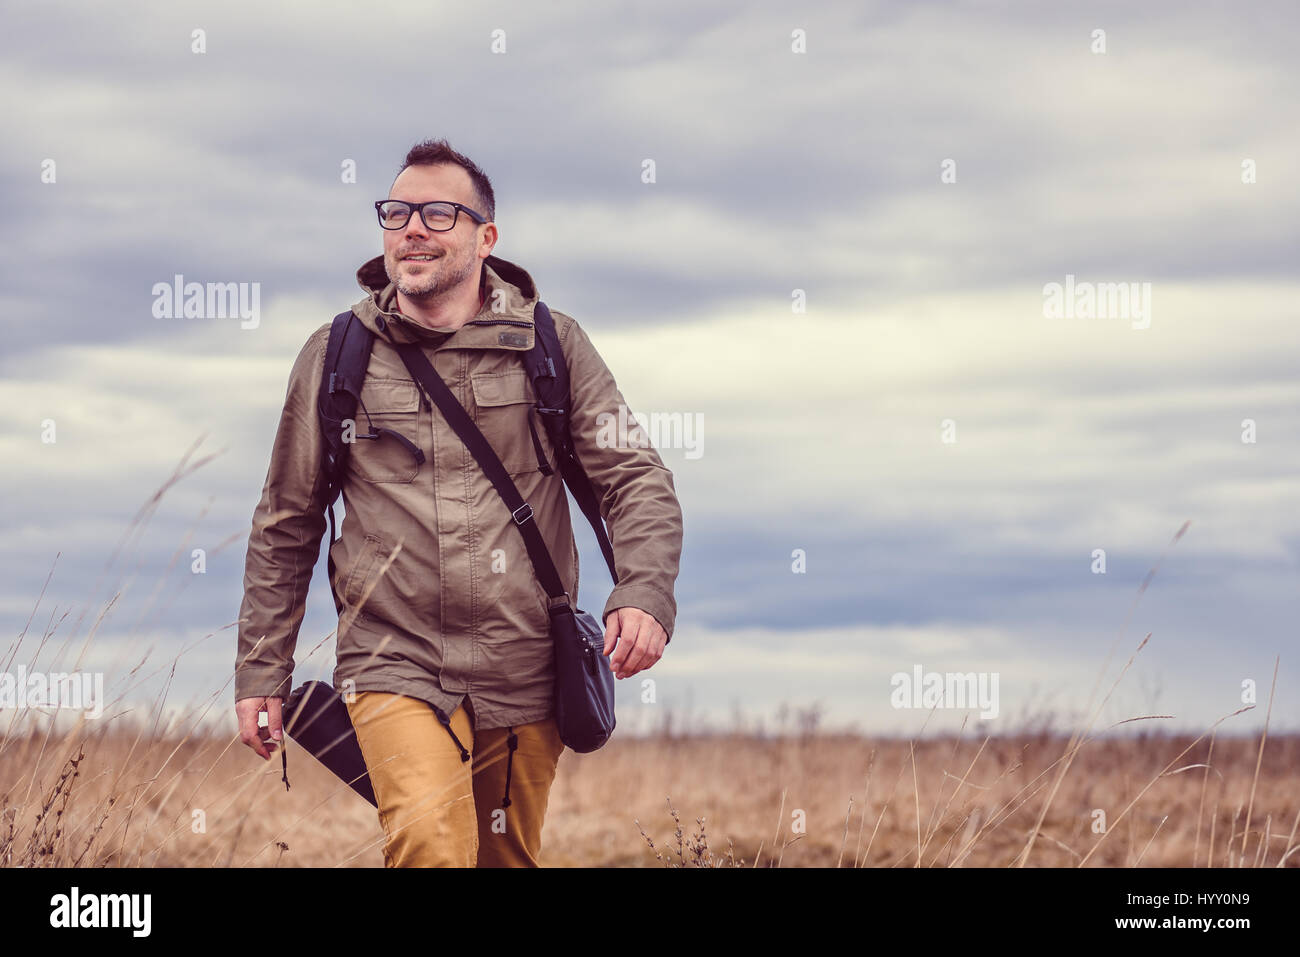 Hiker walking in grassland on a cloudy day - Stock Image